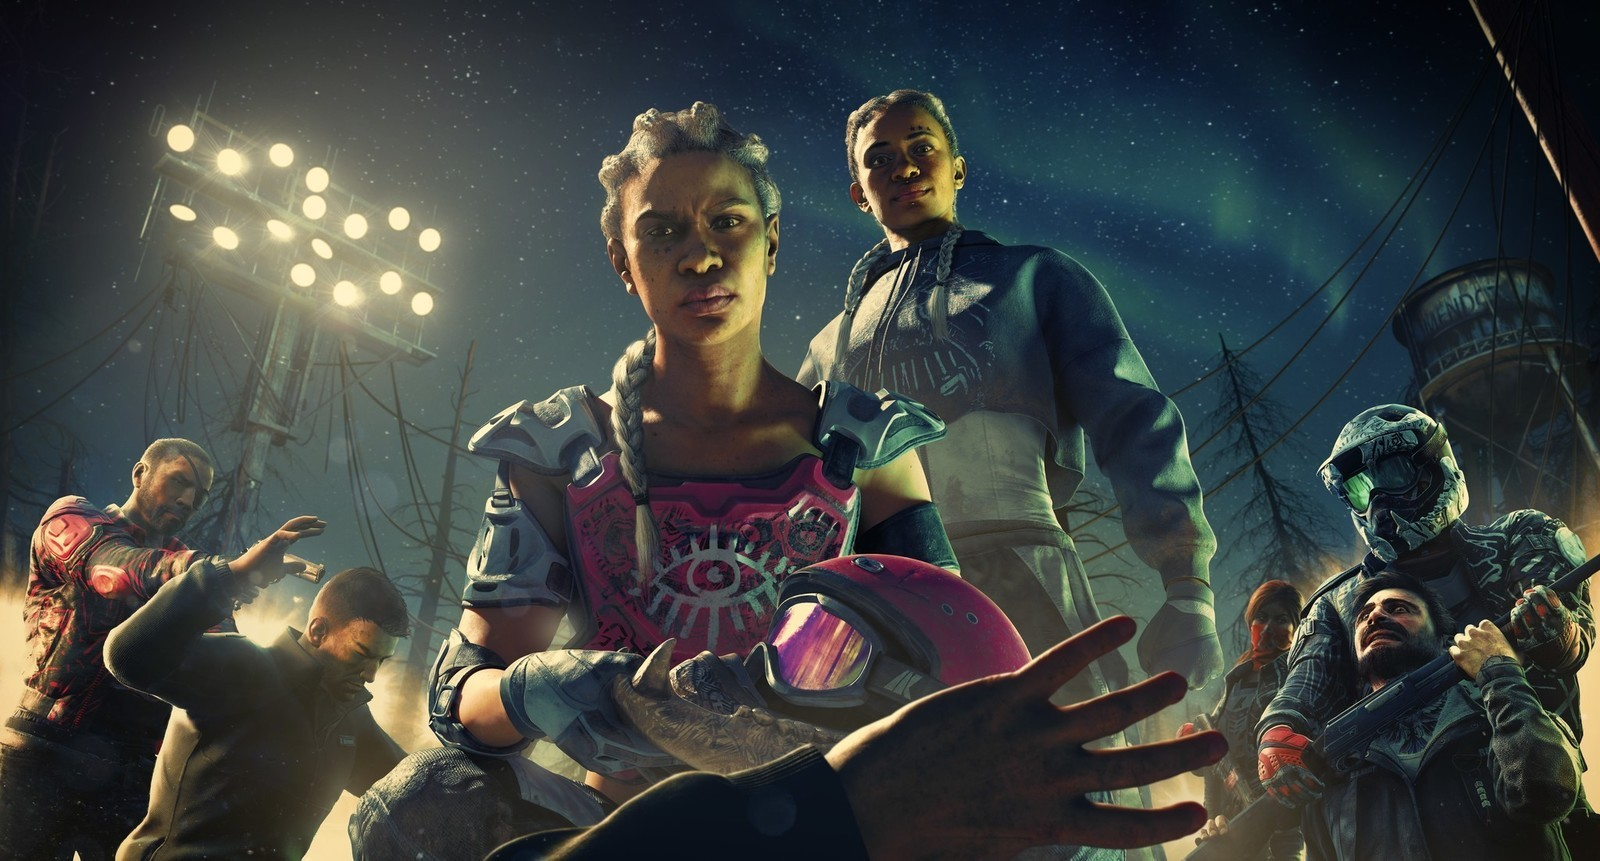 Far Cry: New Dawn - will it be as big as the last one?